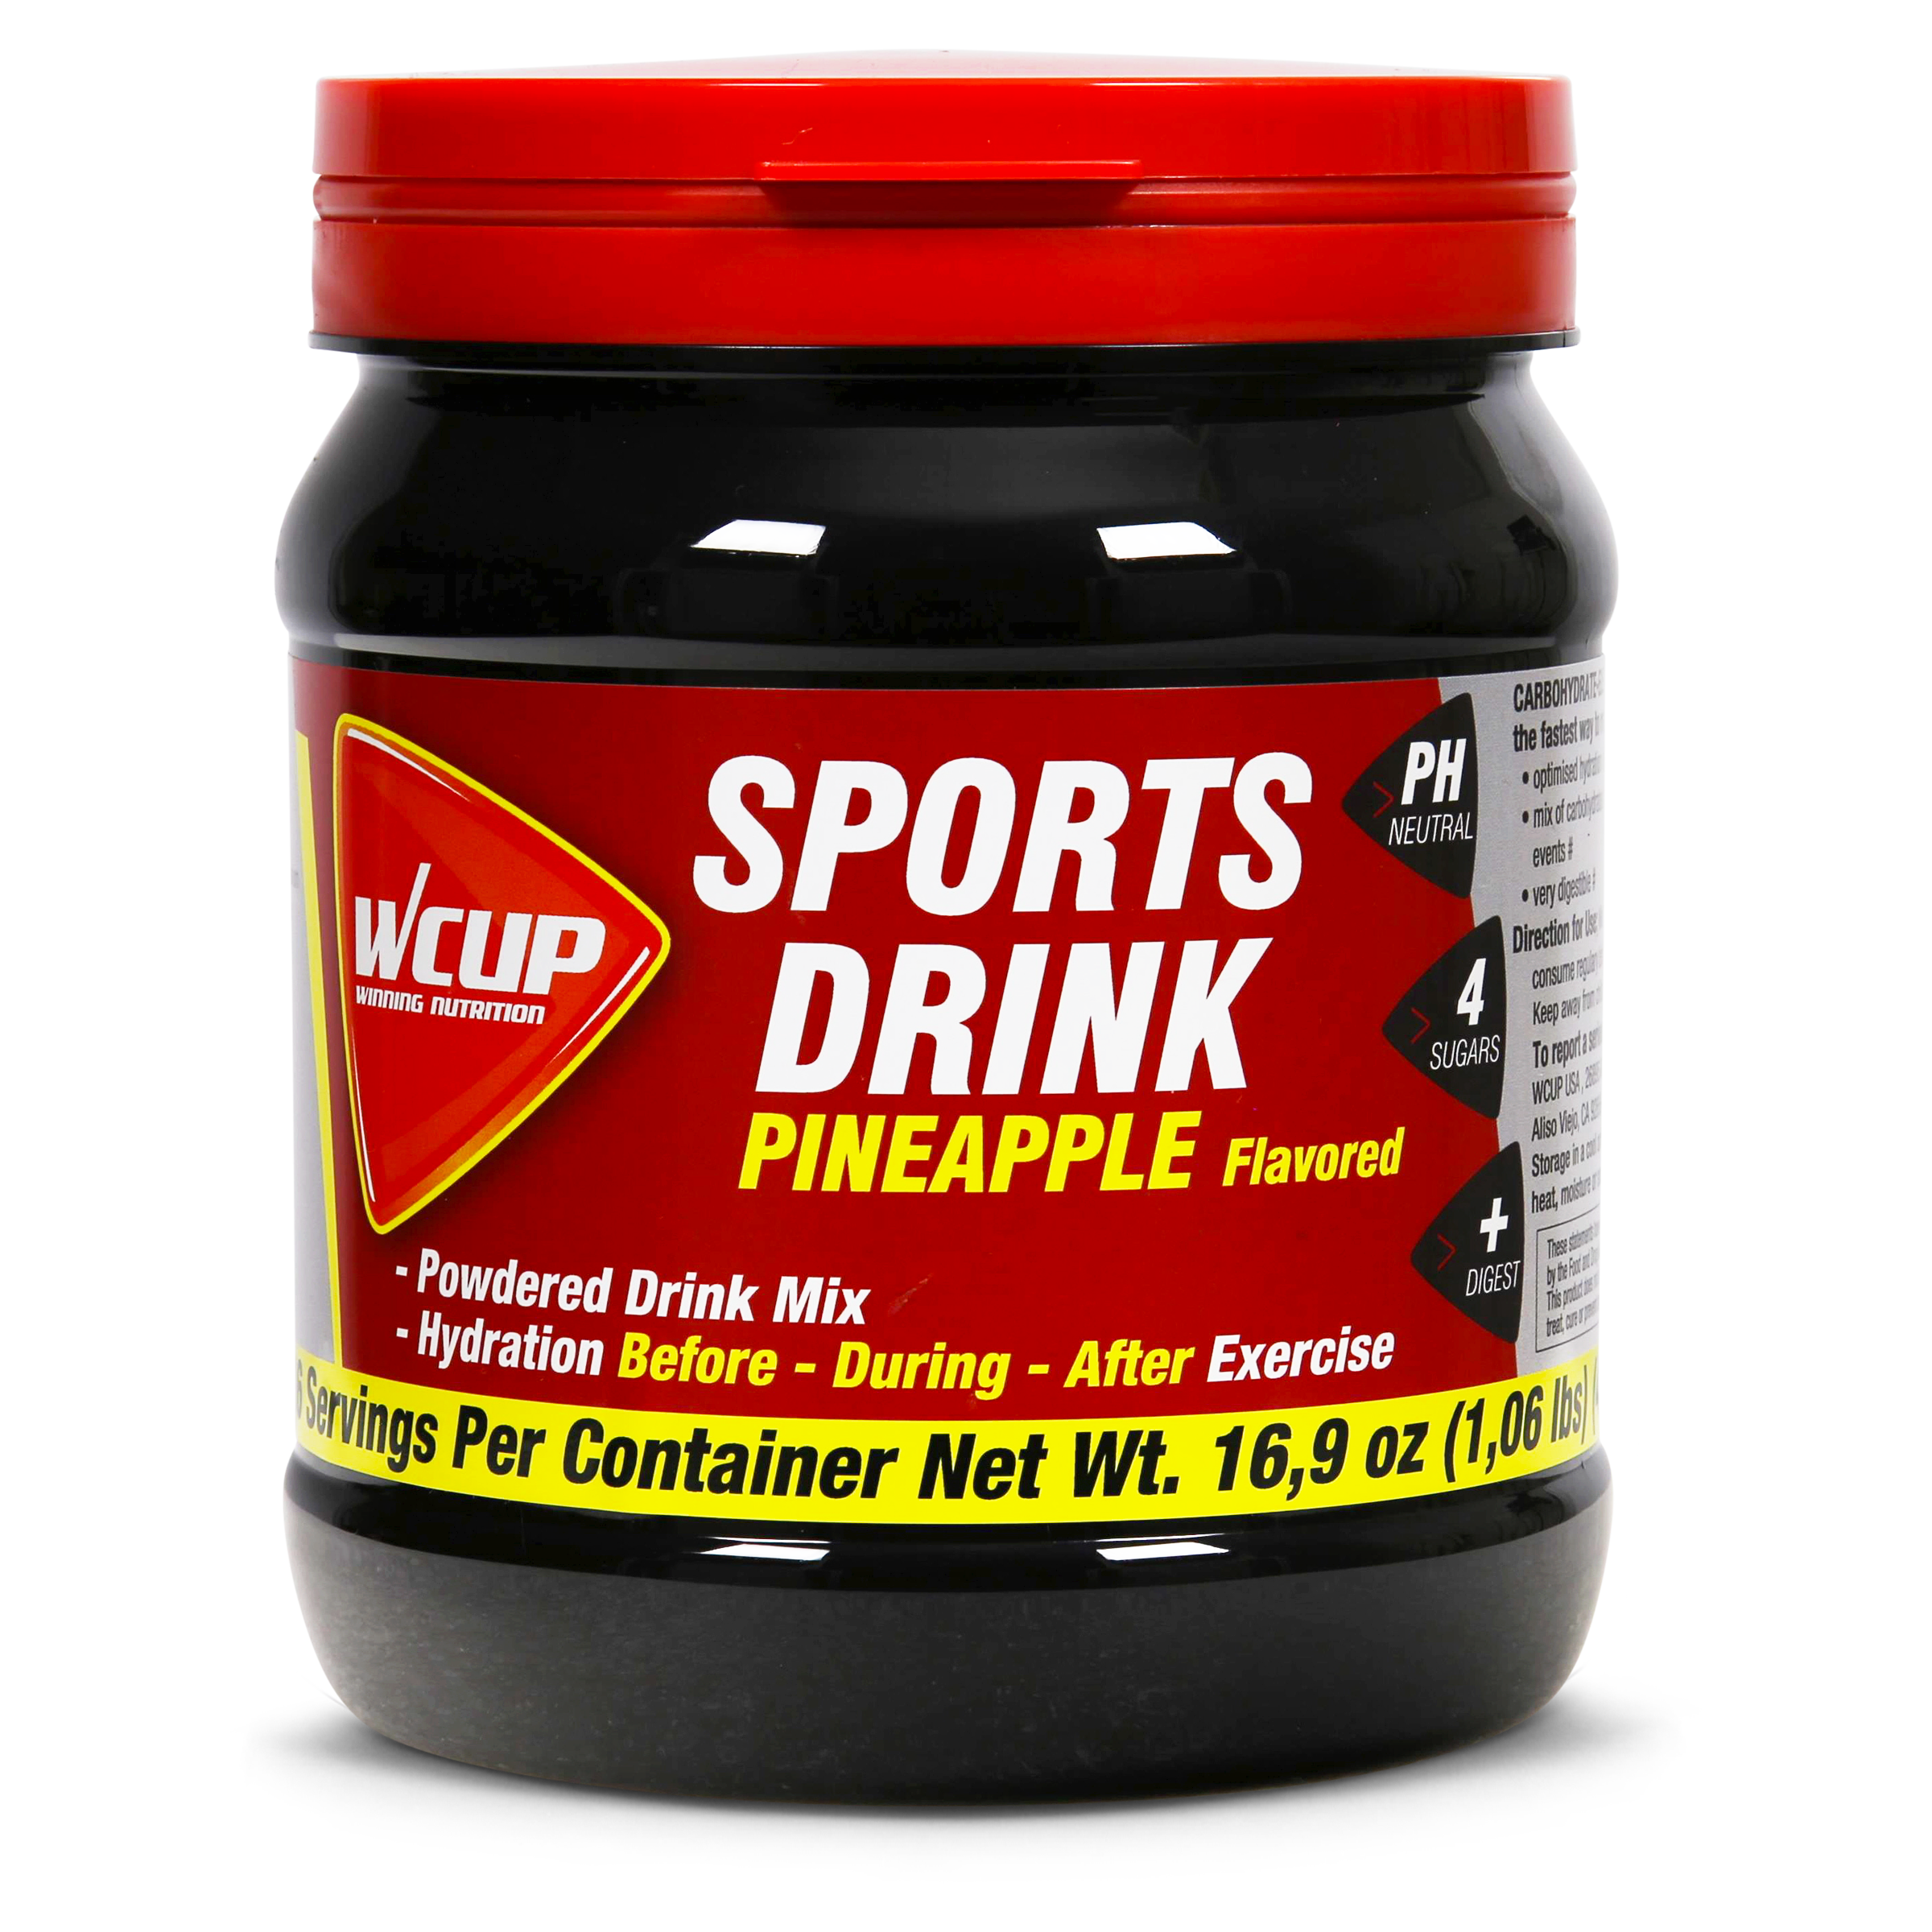 Sports Drink Pineapple